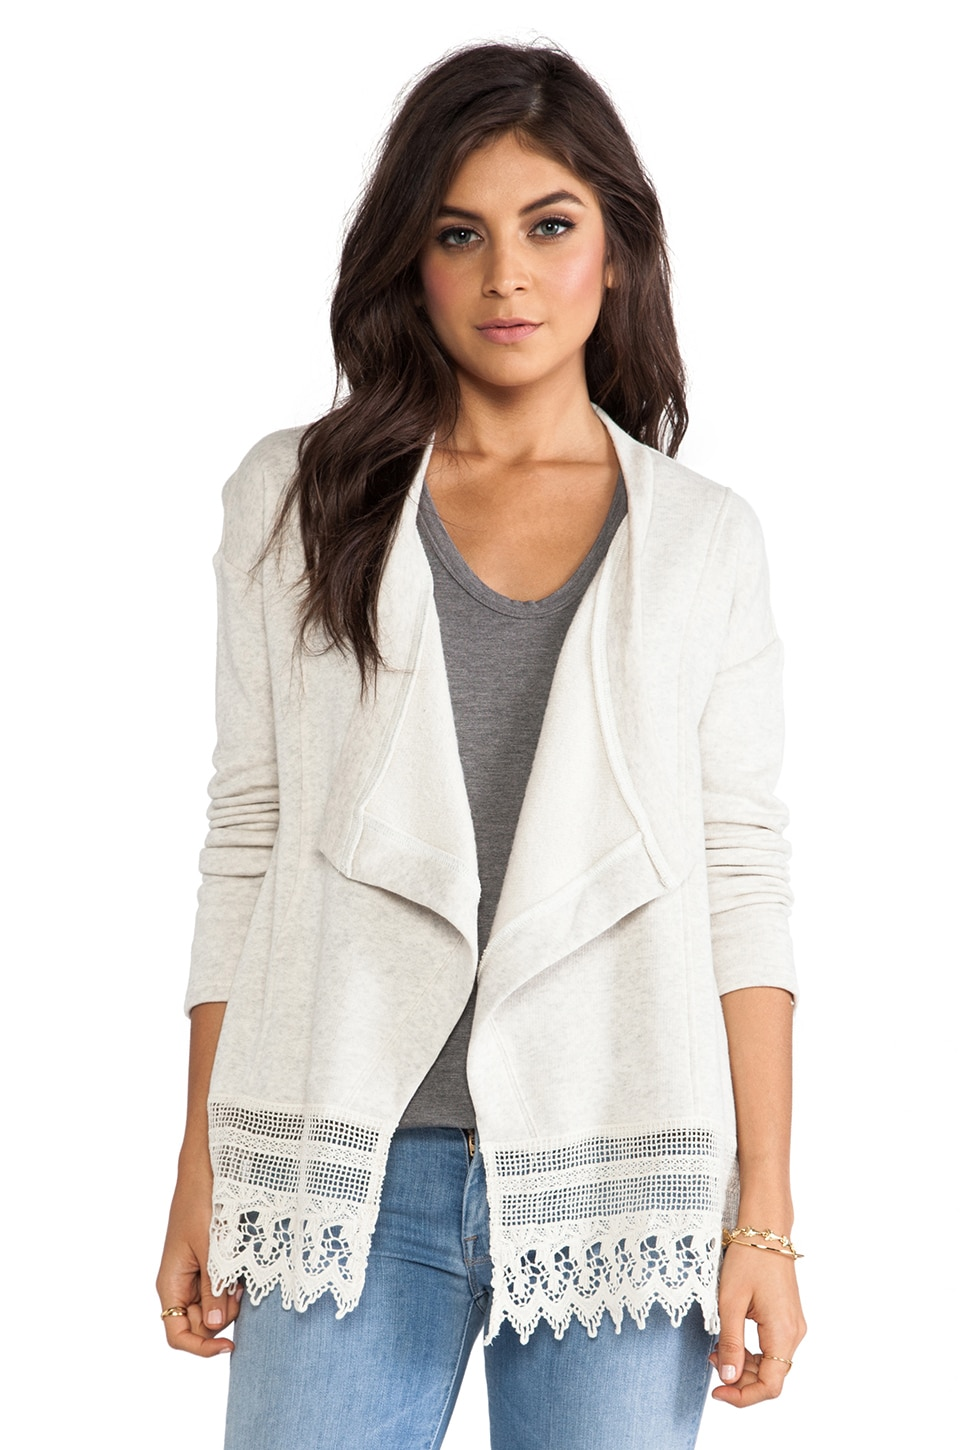 BB Dakota Bellmy Cardigan in Heather Oatmeal